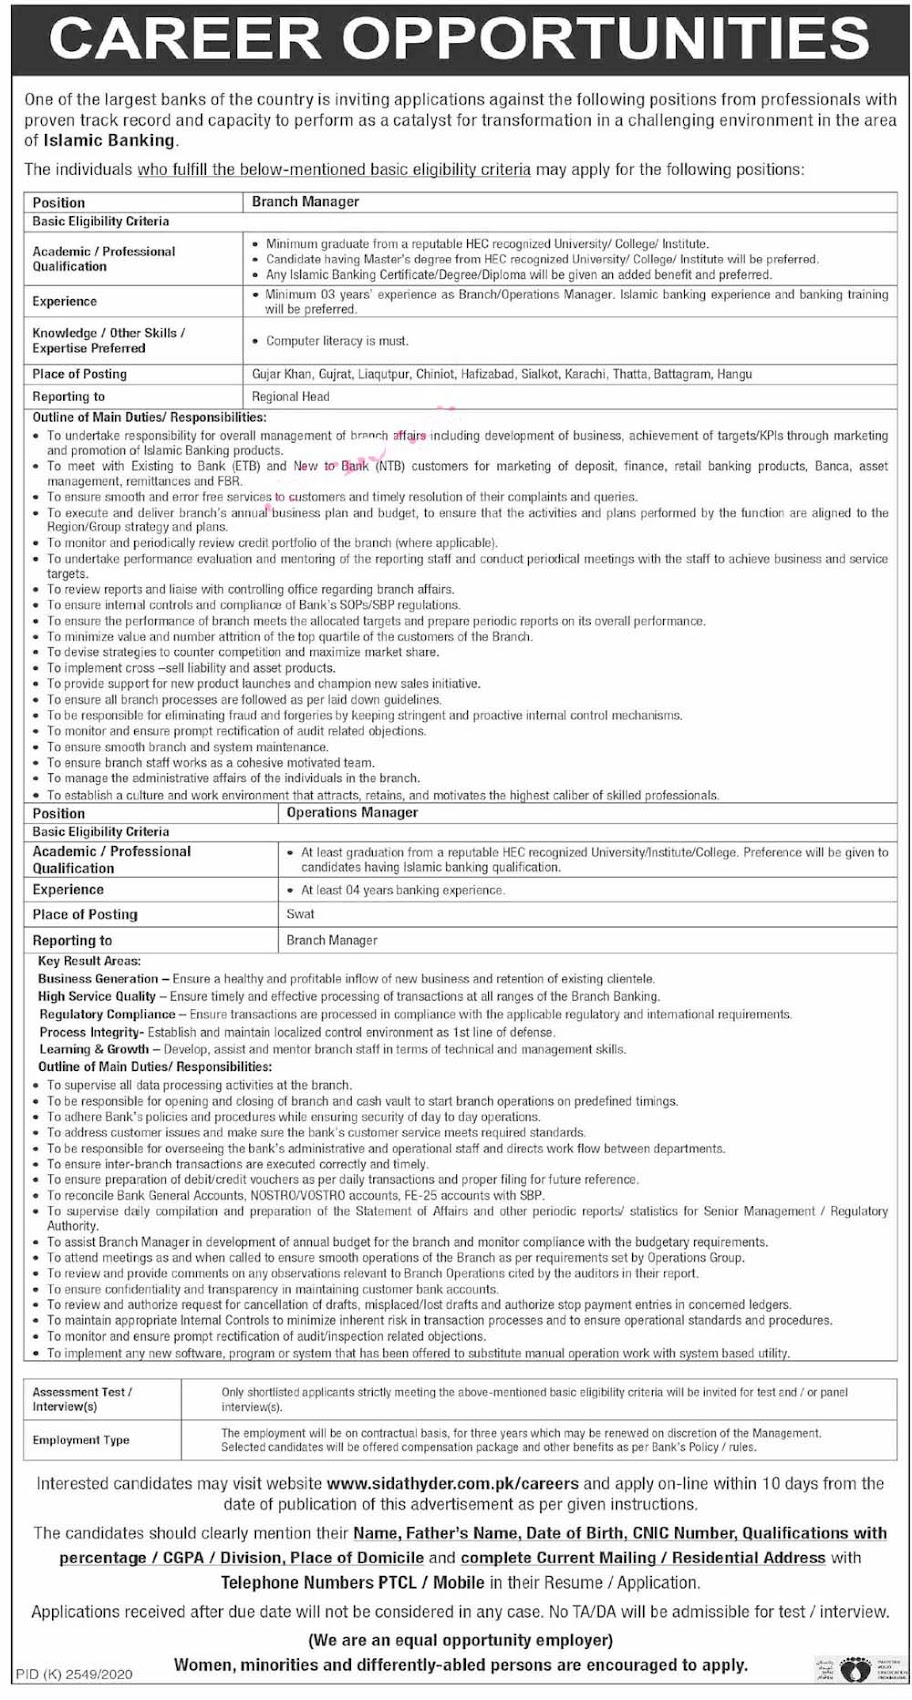 Islamic Bank Latest Jobs in All Over Pakistan - Apply Online 2021